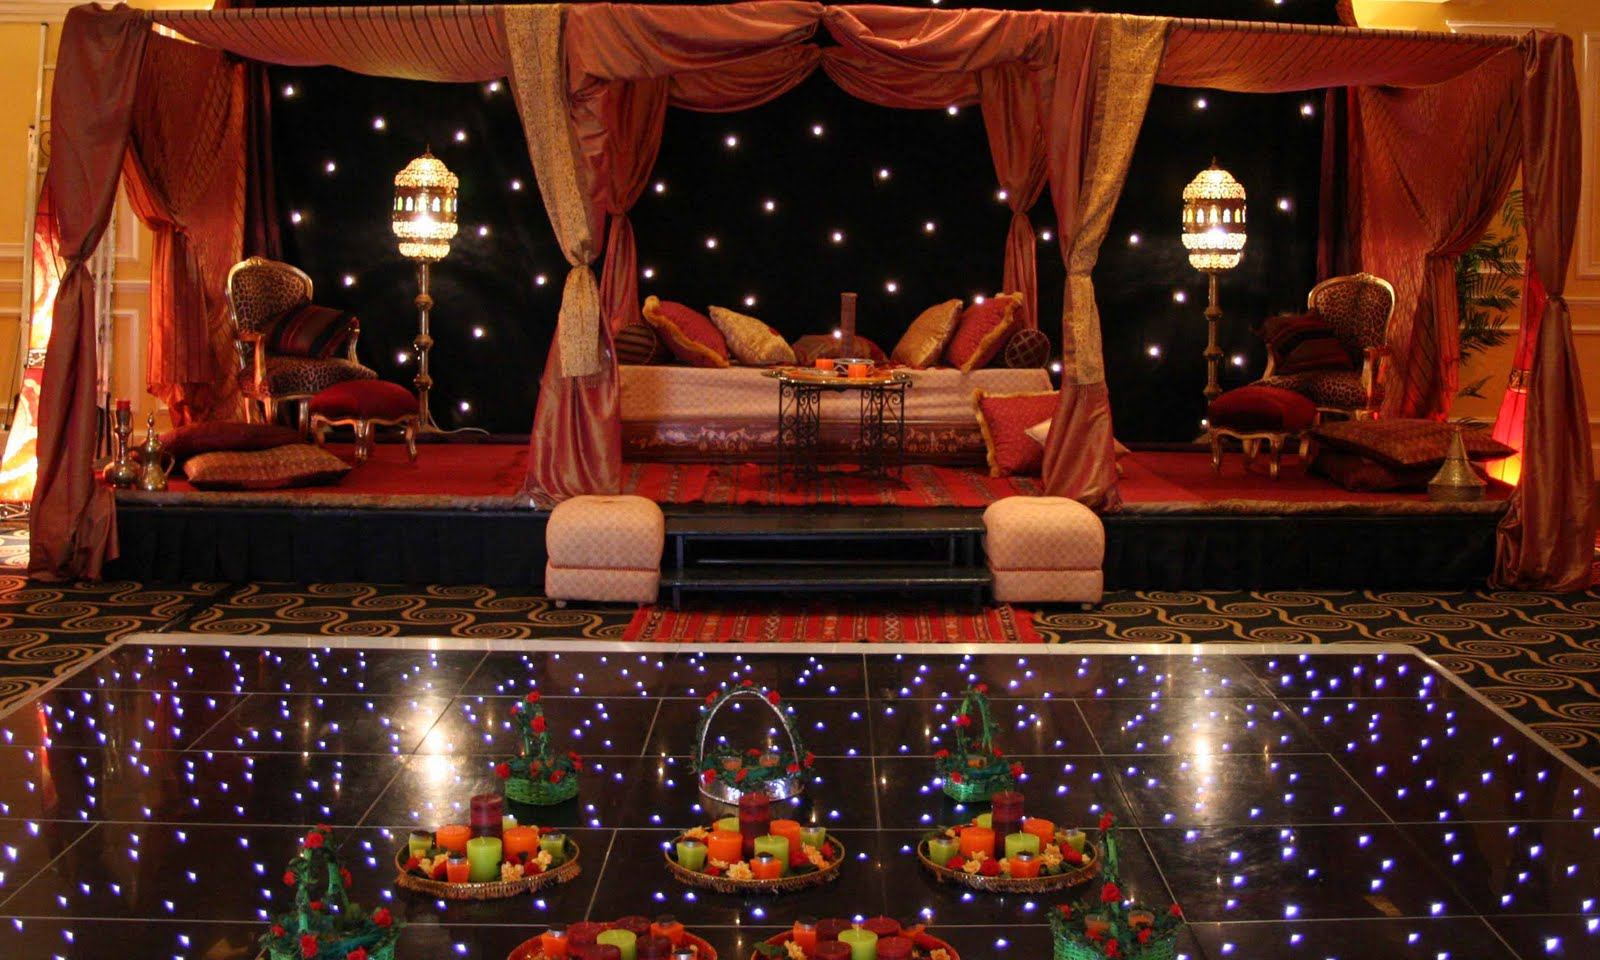 Wallpaper Backgrounds Indian Wedding Stage Decoration Moroccan Themed Wedding Stage 1600x960 Wallpaper Teahub Io